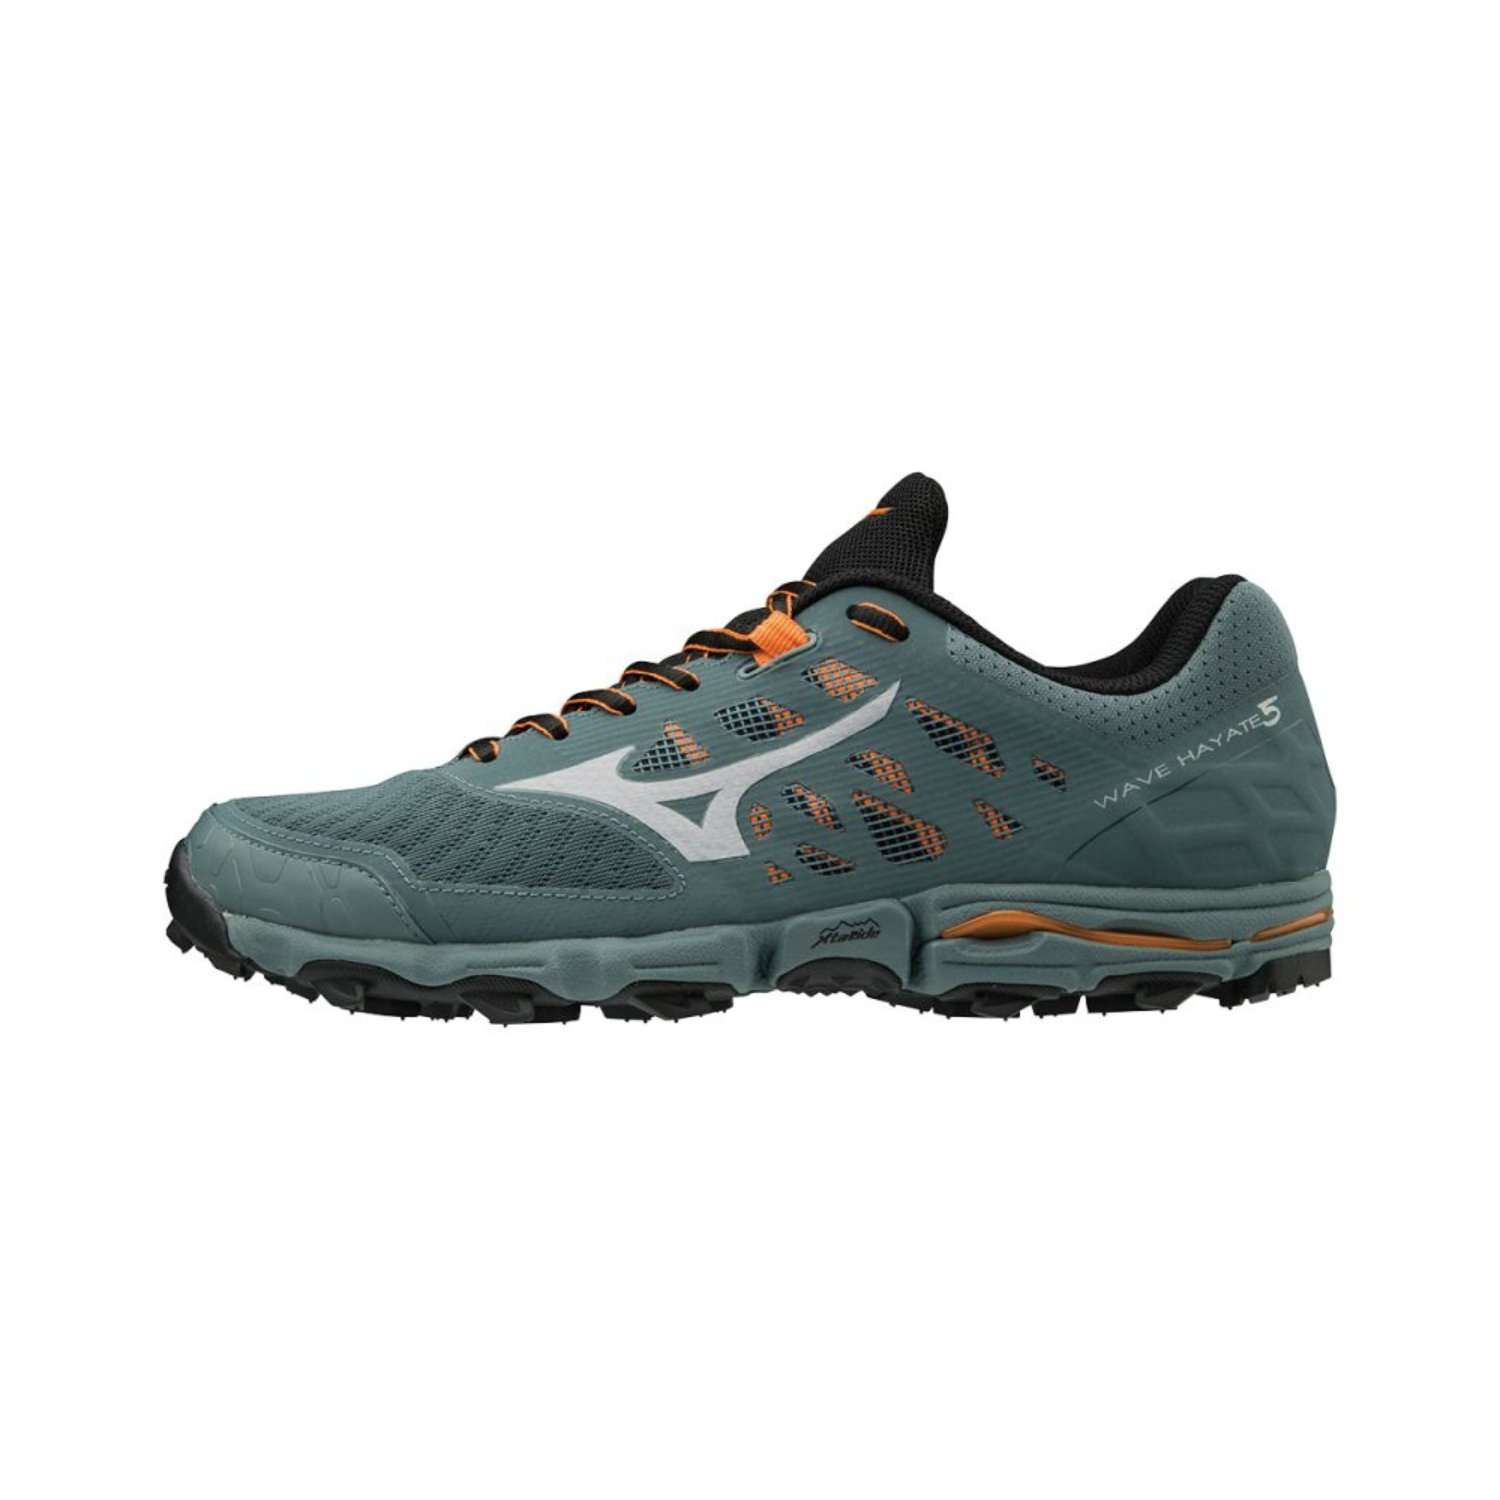 a7bf41bd04303 Outdoorové topánky Merrell Accentor 2 Vent M J48517 - Actisport.sk